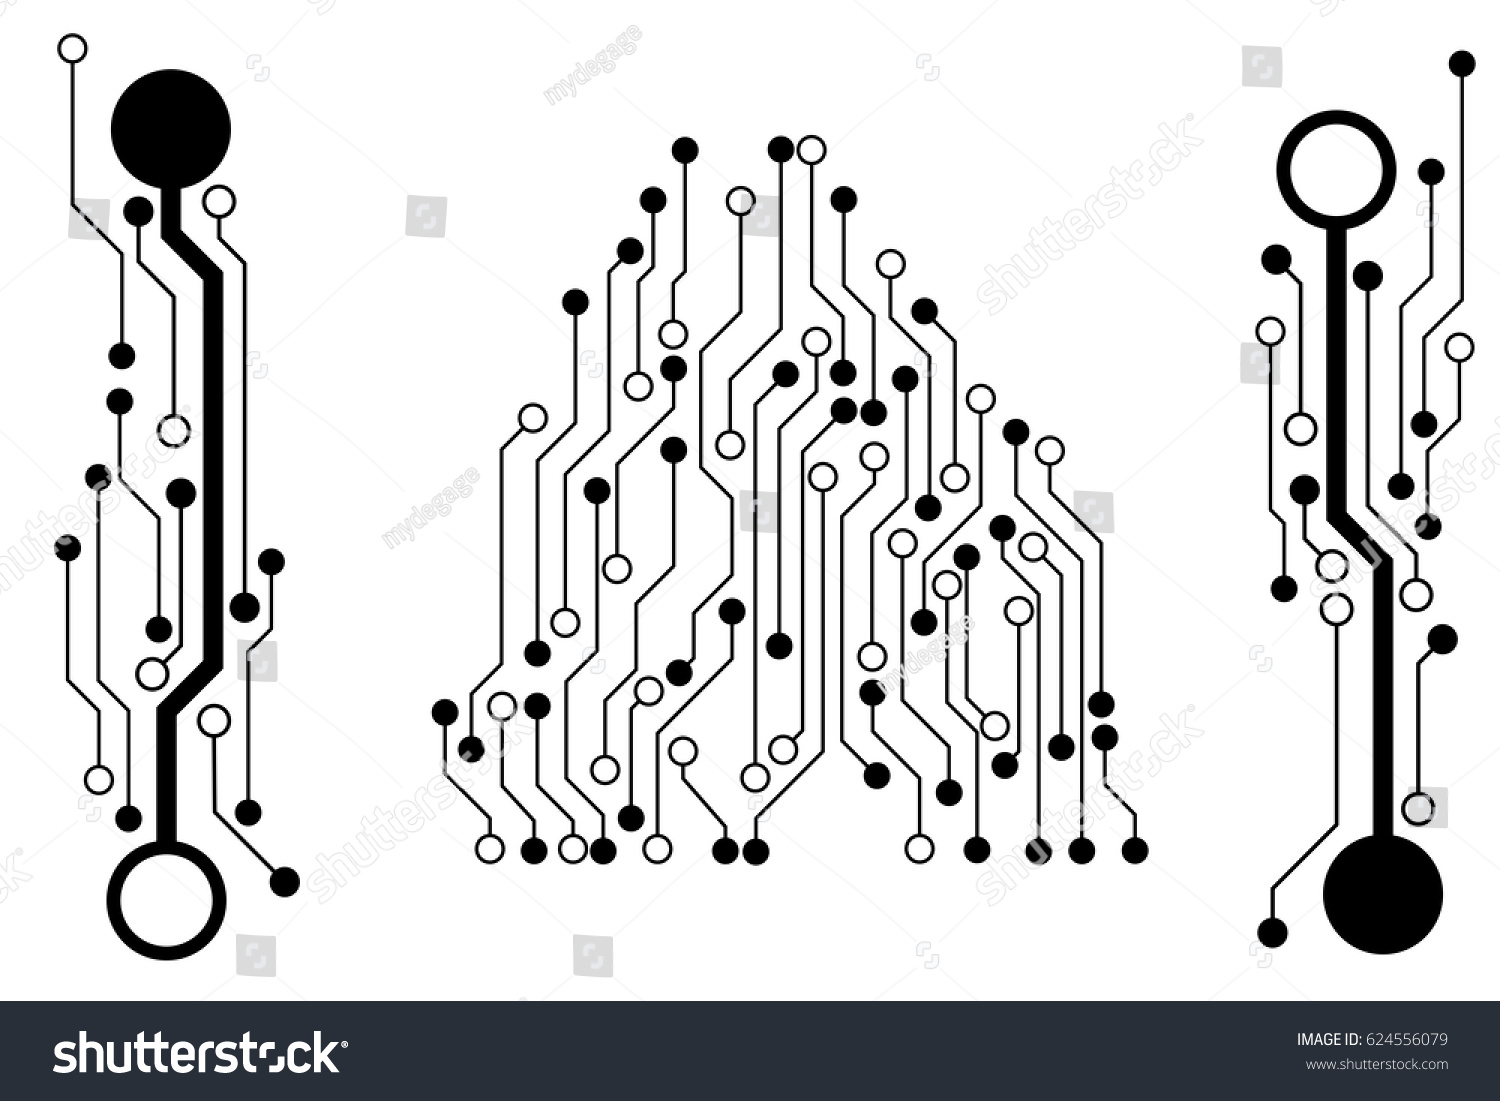 Vector Circuit Board Pattern Background Technology Stock Vector ...